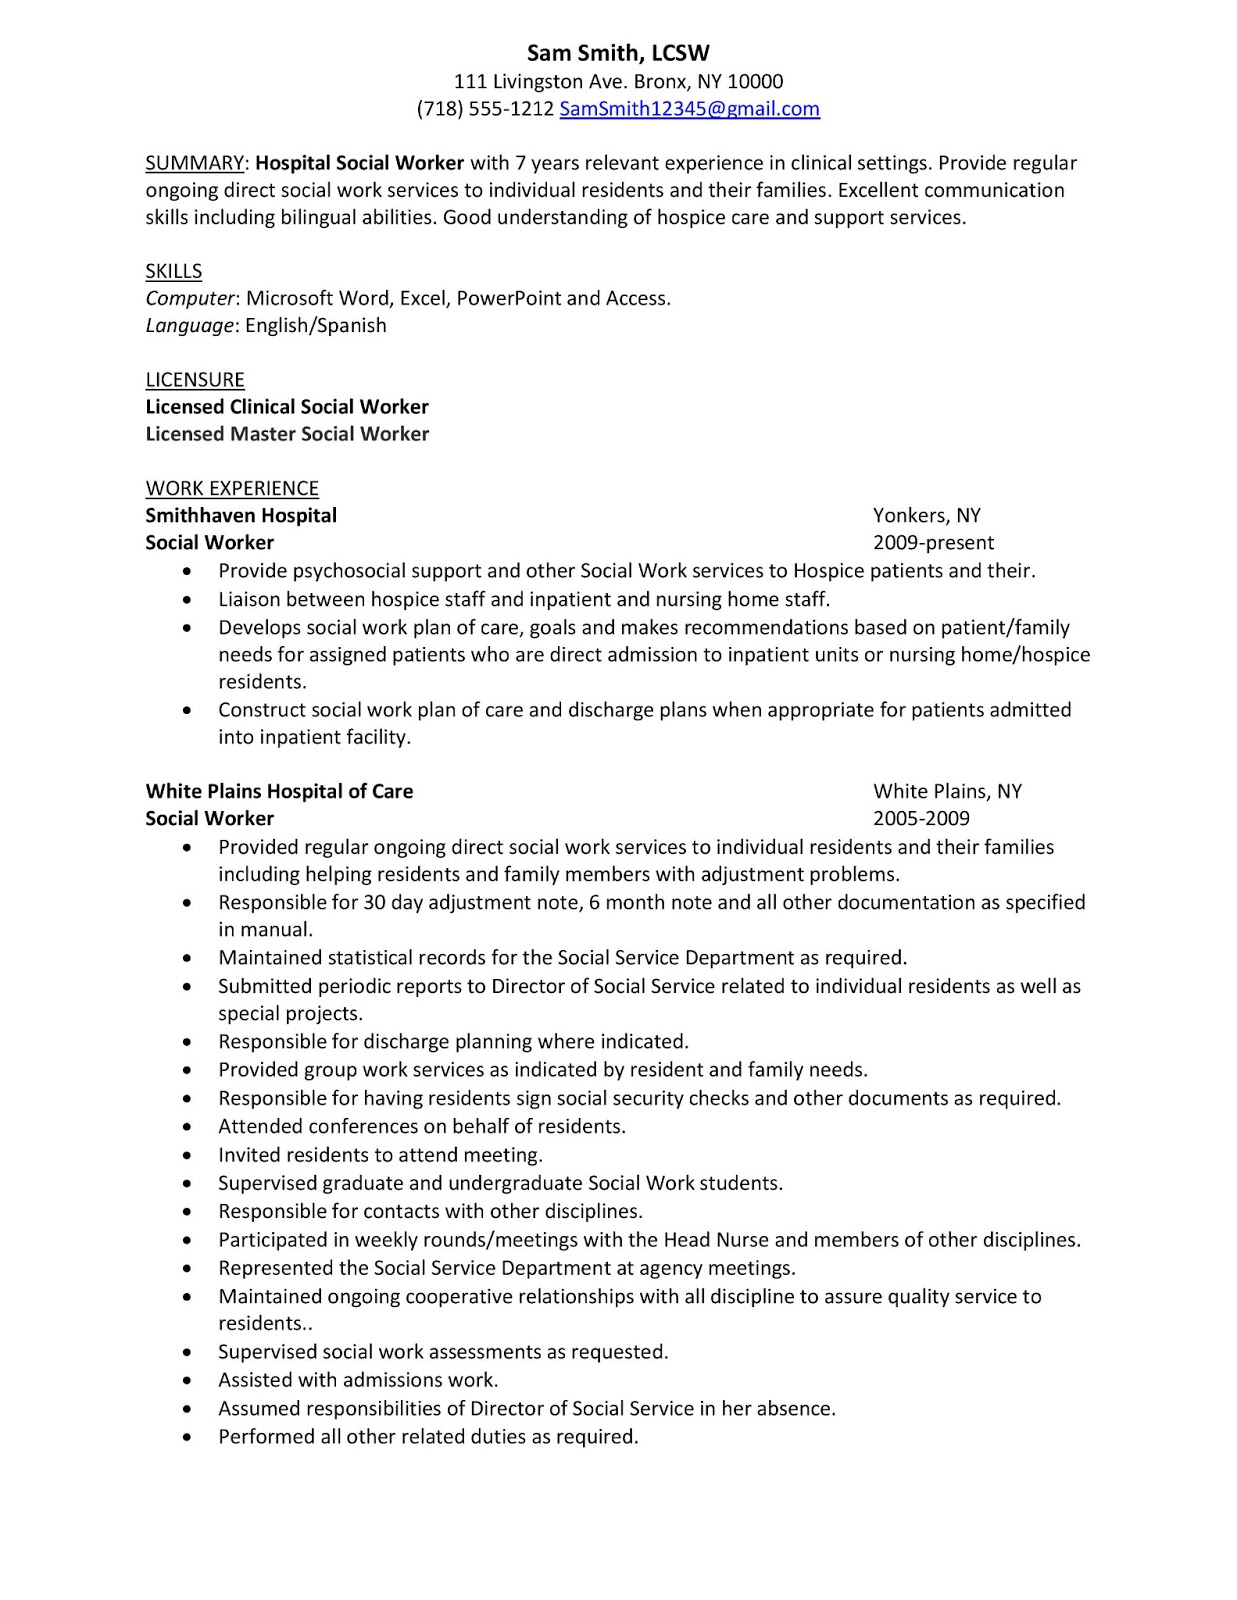 English Essay Writing Tricks Ideas From Professionals Ghostwrite Definition Of Ghostwrite By Merriam Webster Resume For Ojt Hrm